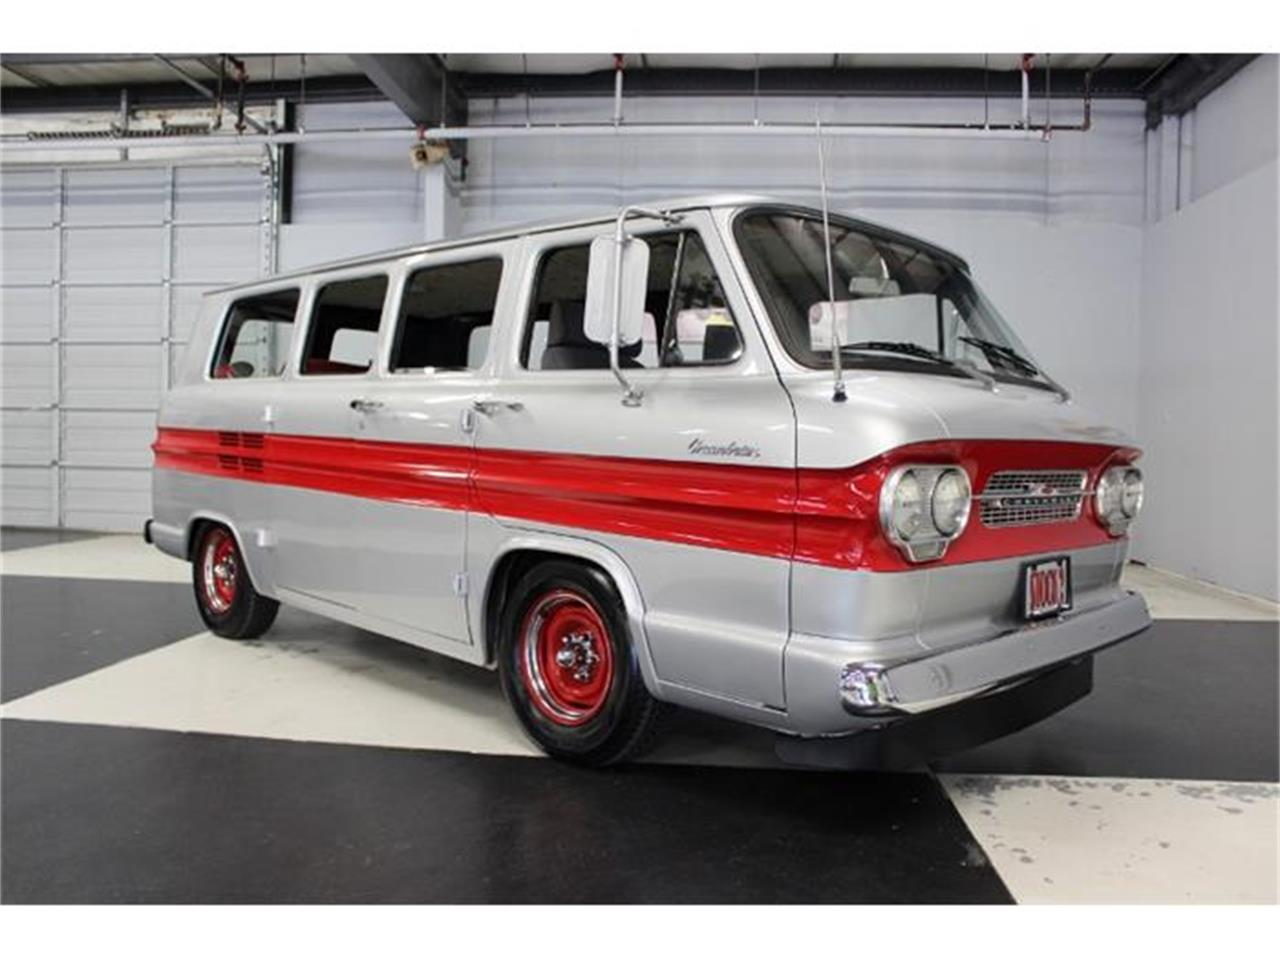 Large Picture of Classic 1961 Van located in Lillington North Carolina - $16,500.00 - F258